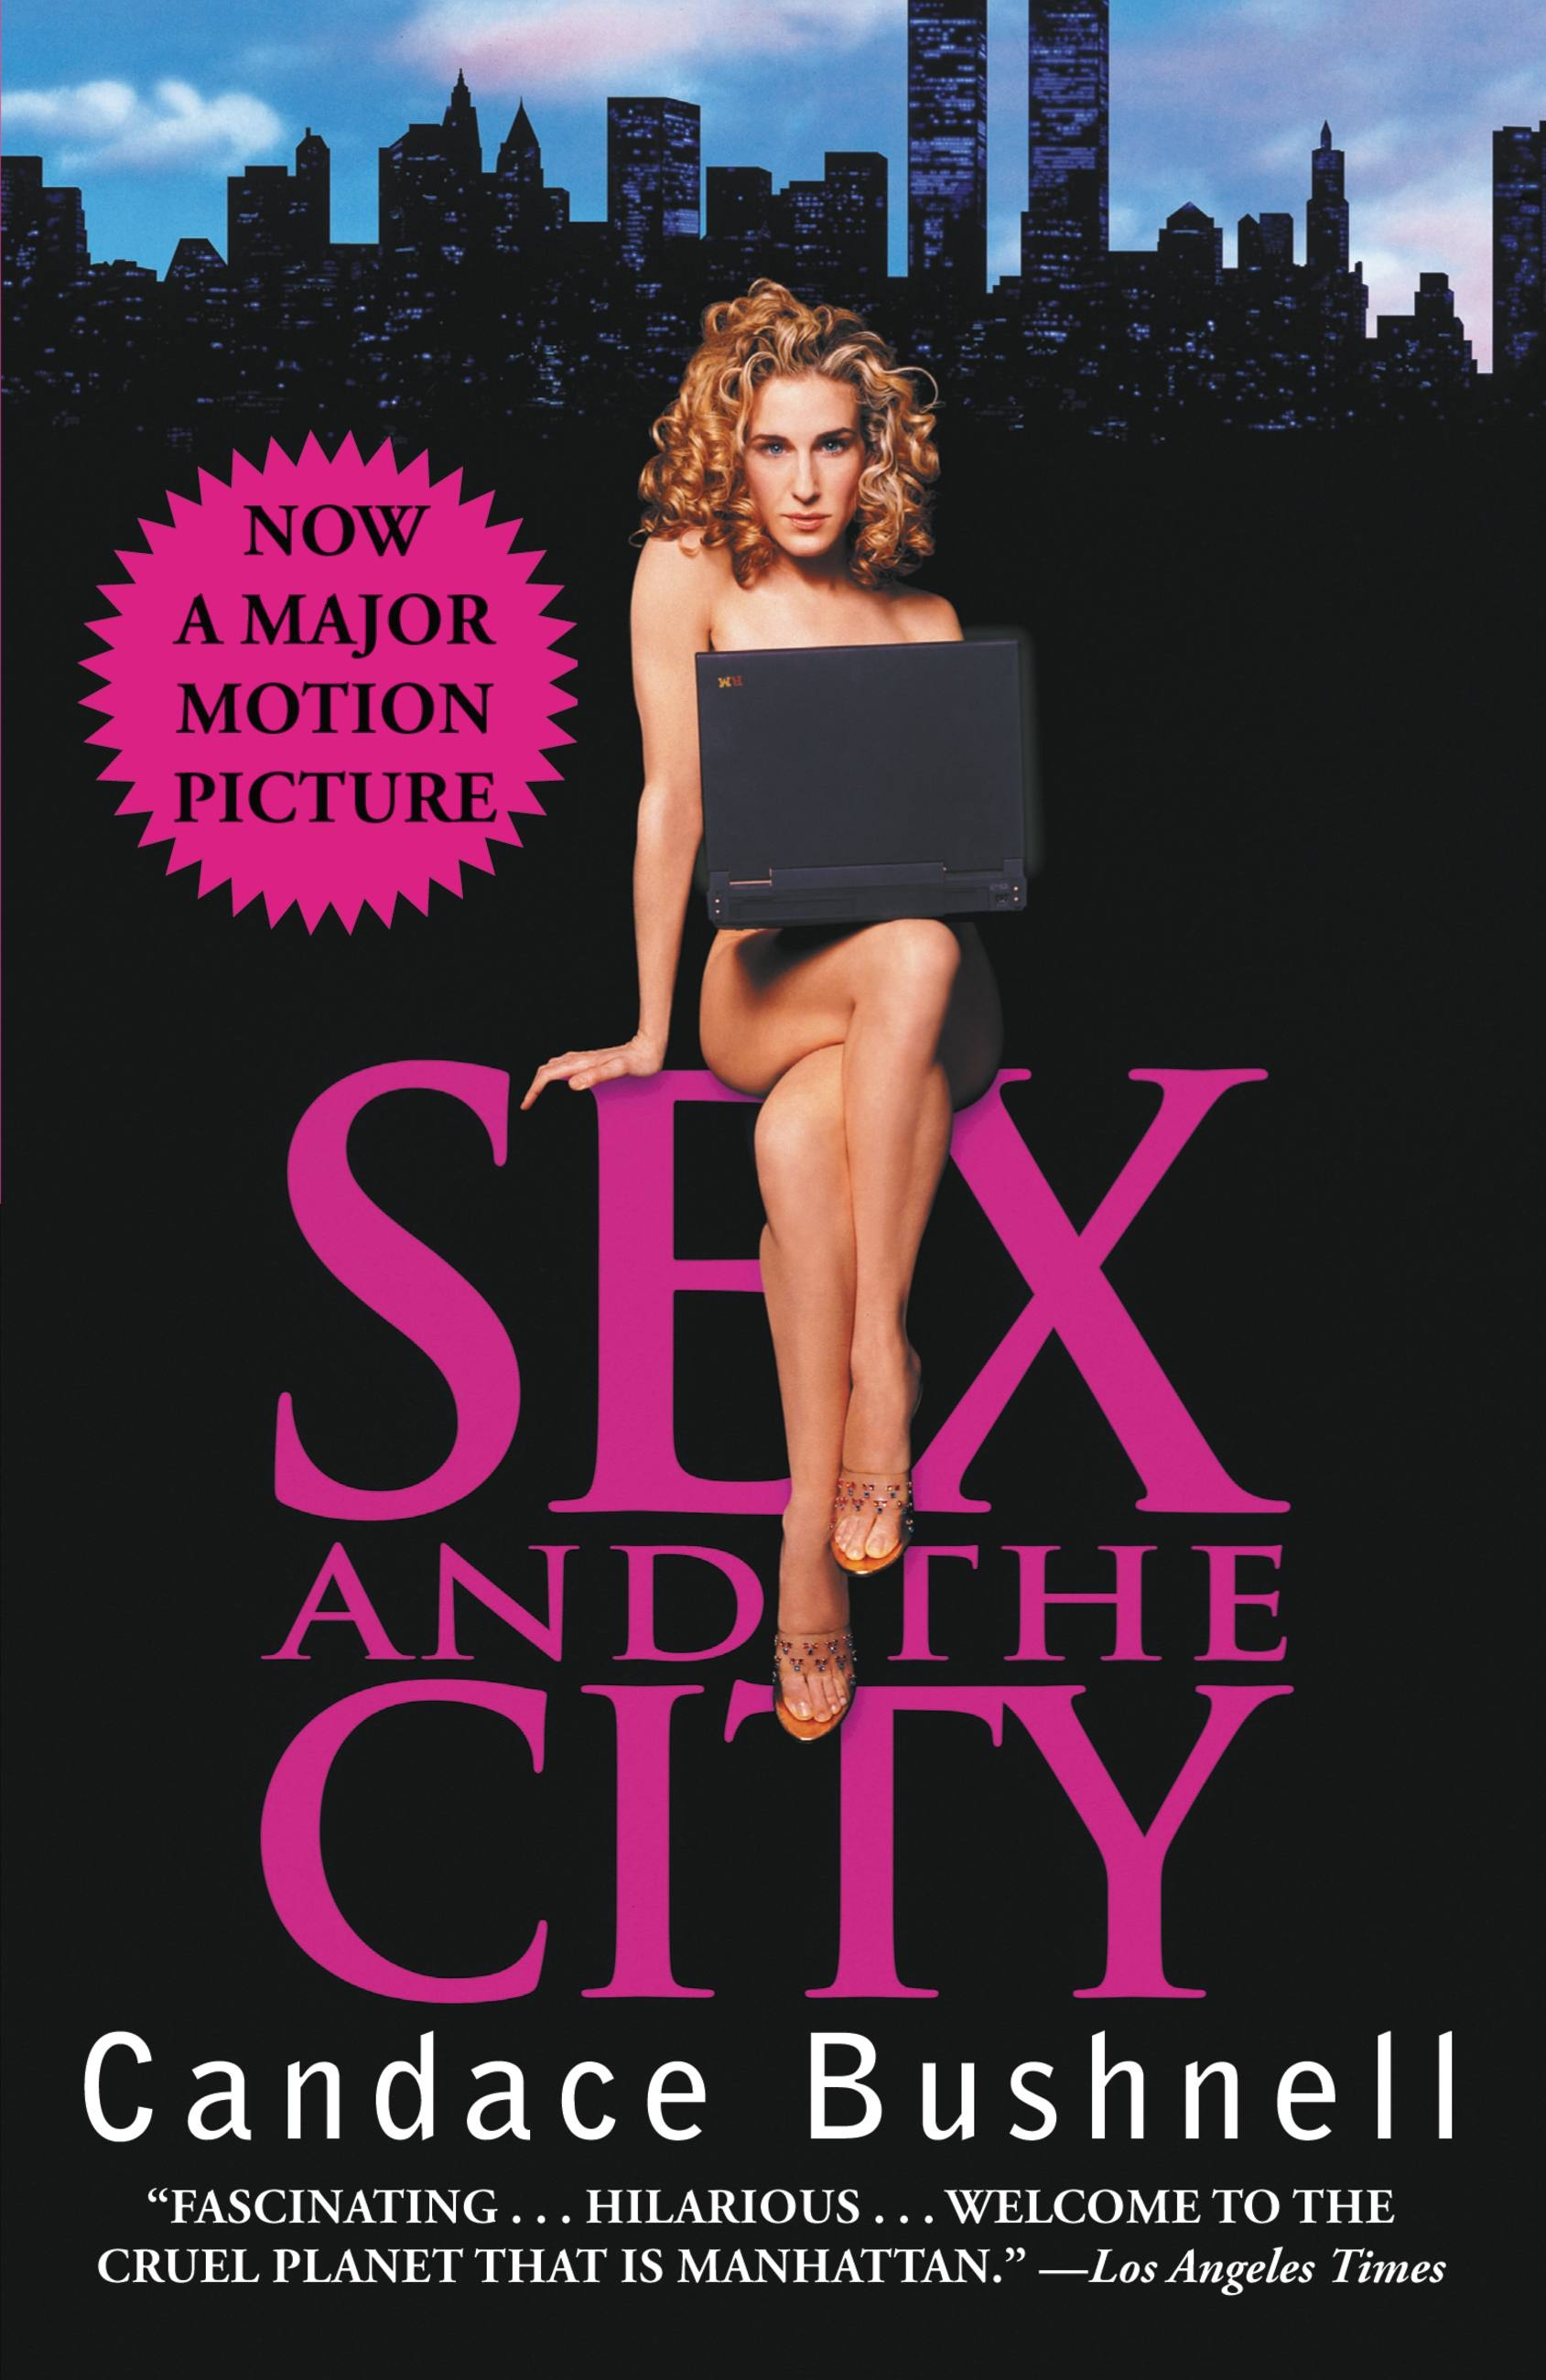 sex and city essay From the paper: a popular television show that was highly focused on development is the comedy sex and the city the irony of that show is that though it is basically a comedy, the show attained a high level of fascination, and a high level of emulation, due to the means by which it portrayed the main theme it was concerned with of character development, or on a broader scale, the final stage.